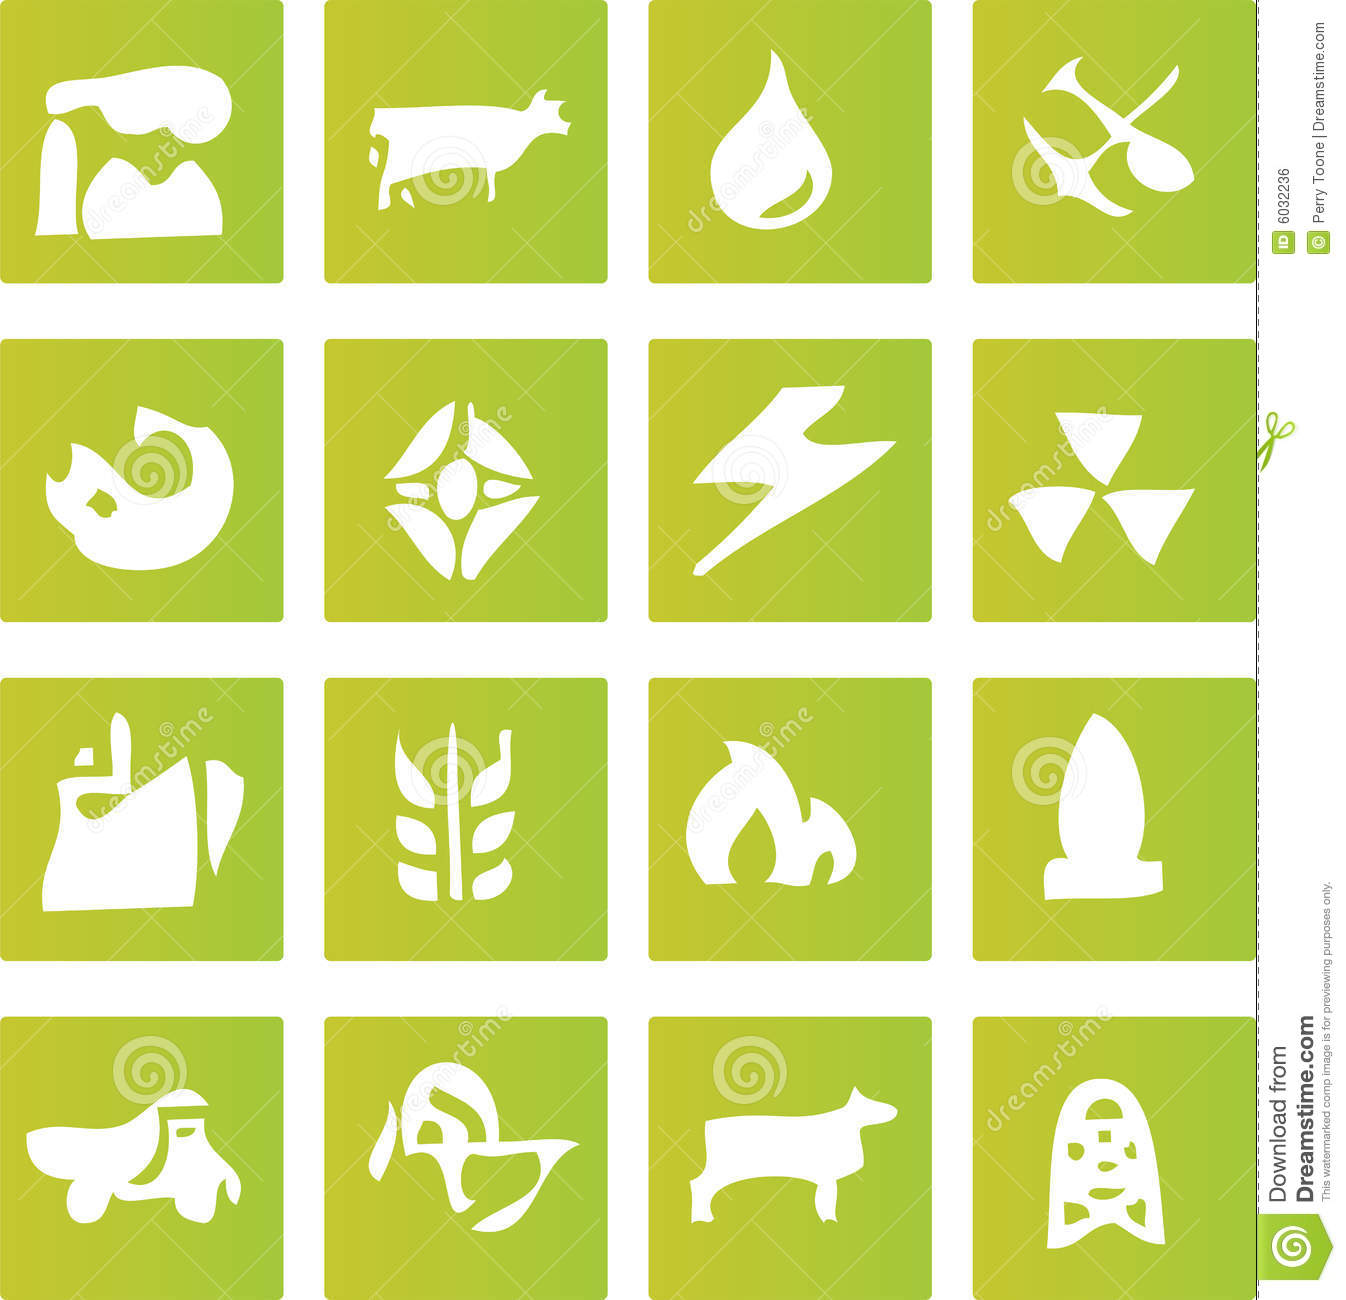 Green Industry Icons Royalty Free Stock Image